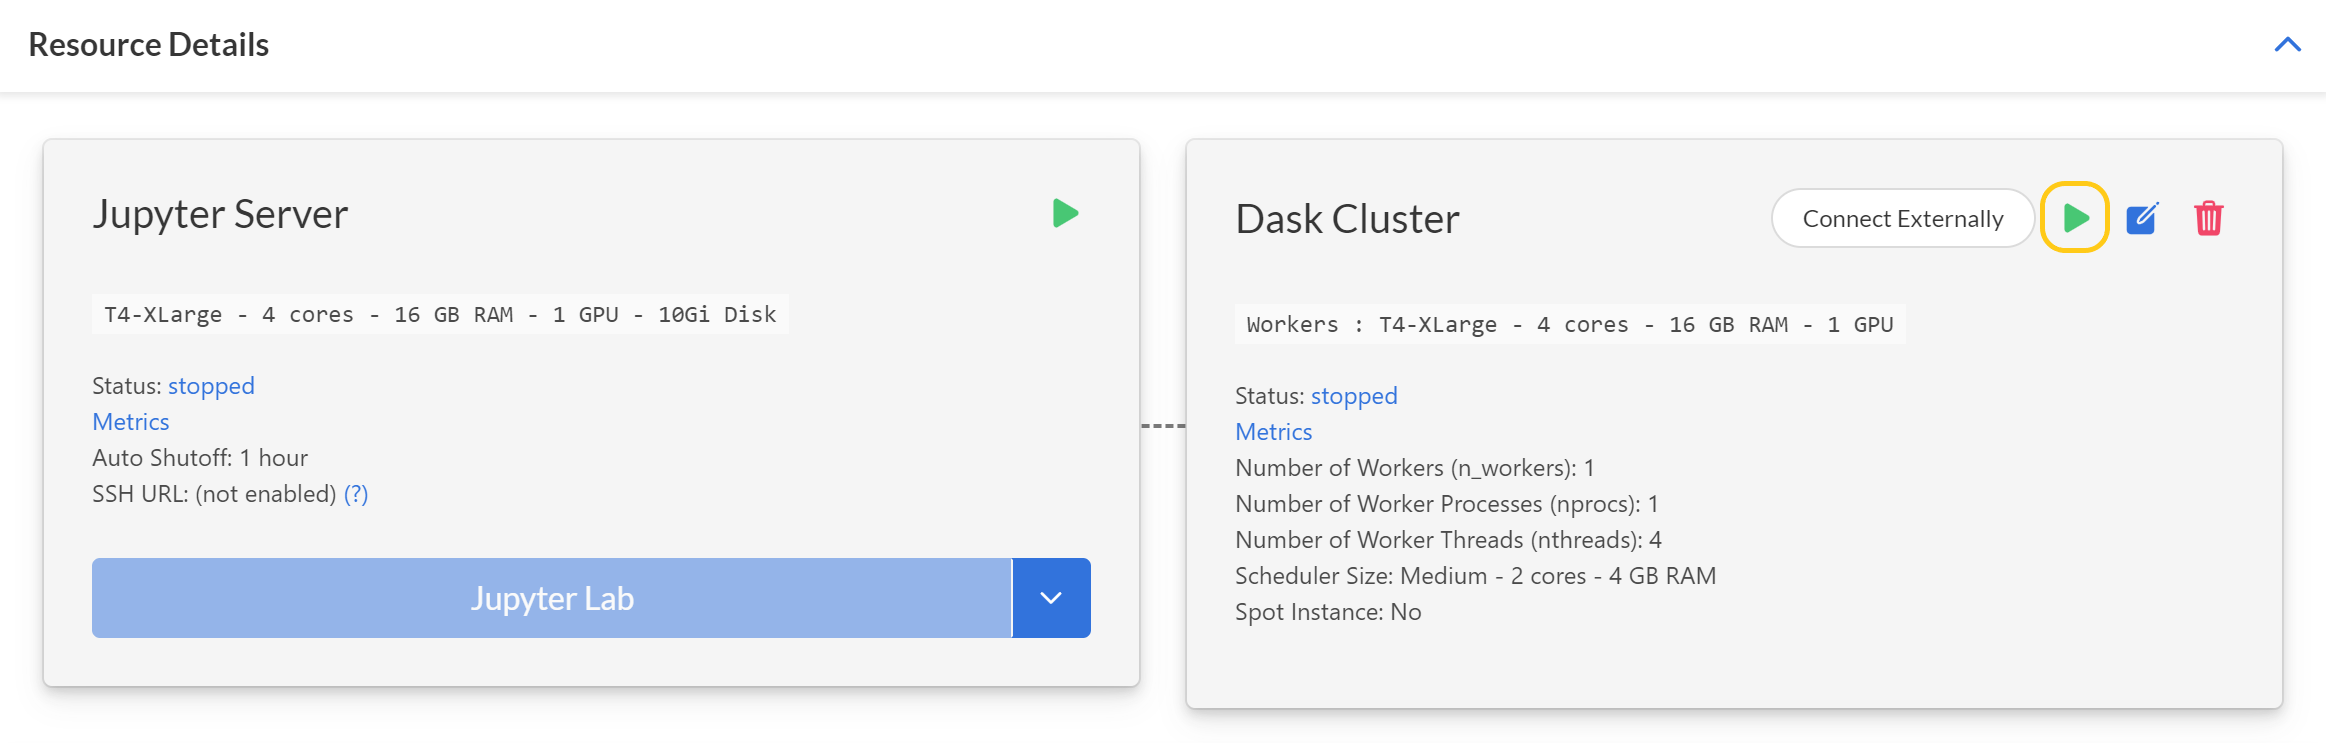 Cluster card in Project page of Saturn Cloud UI